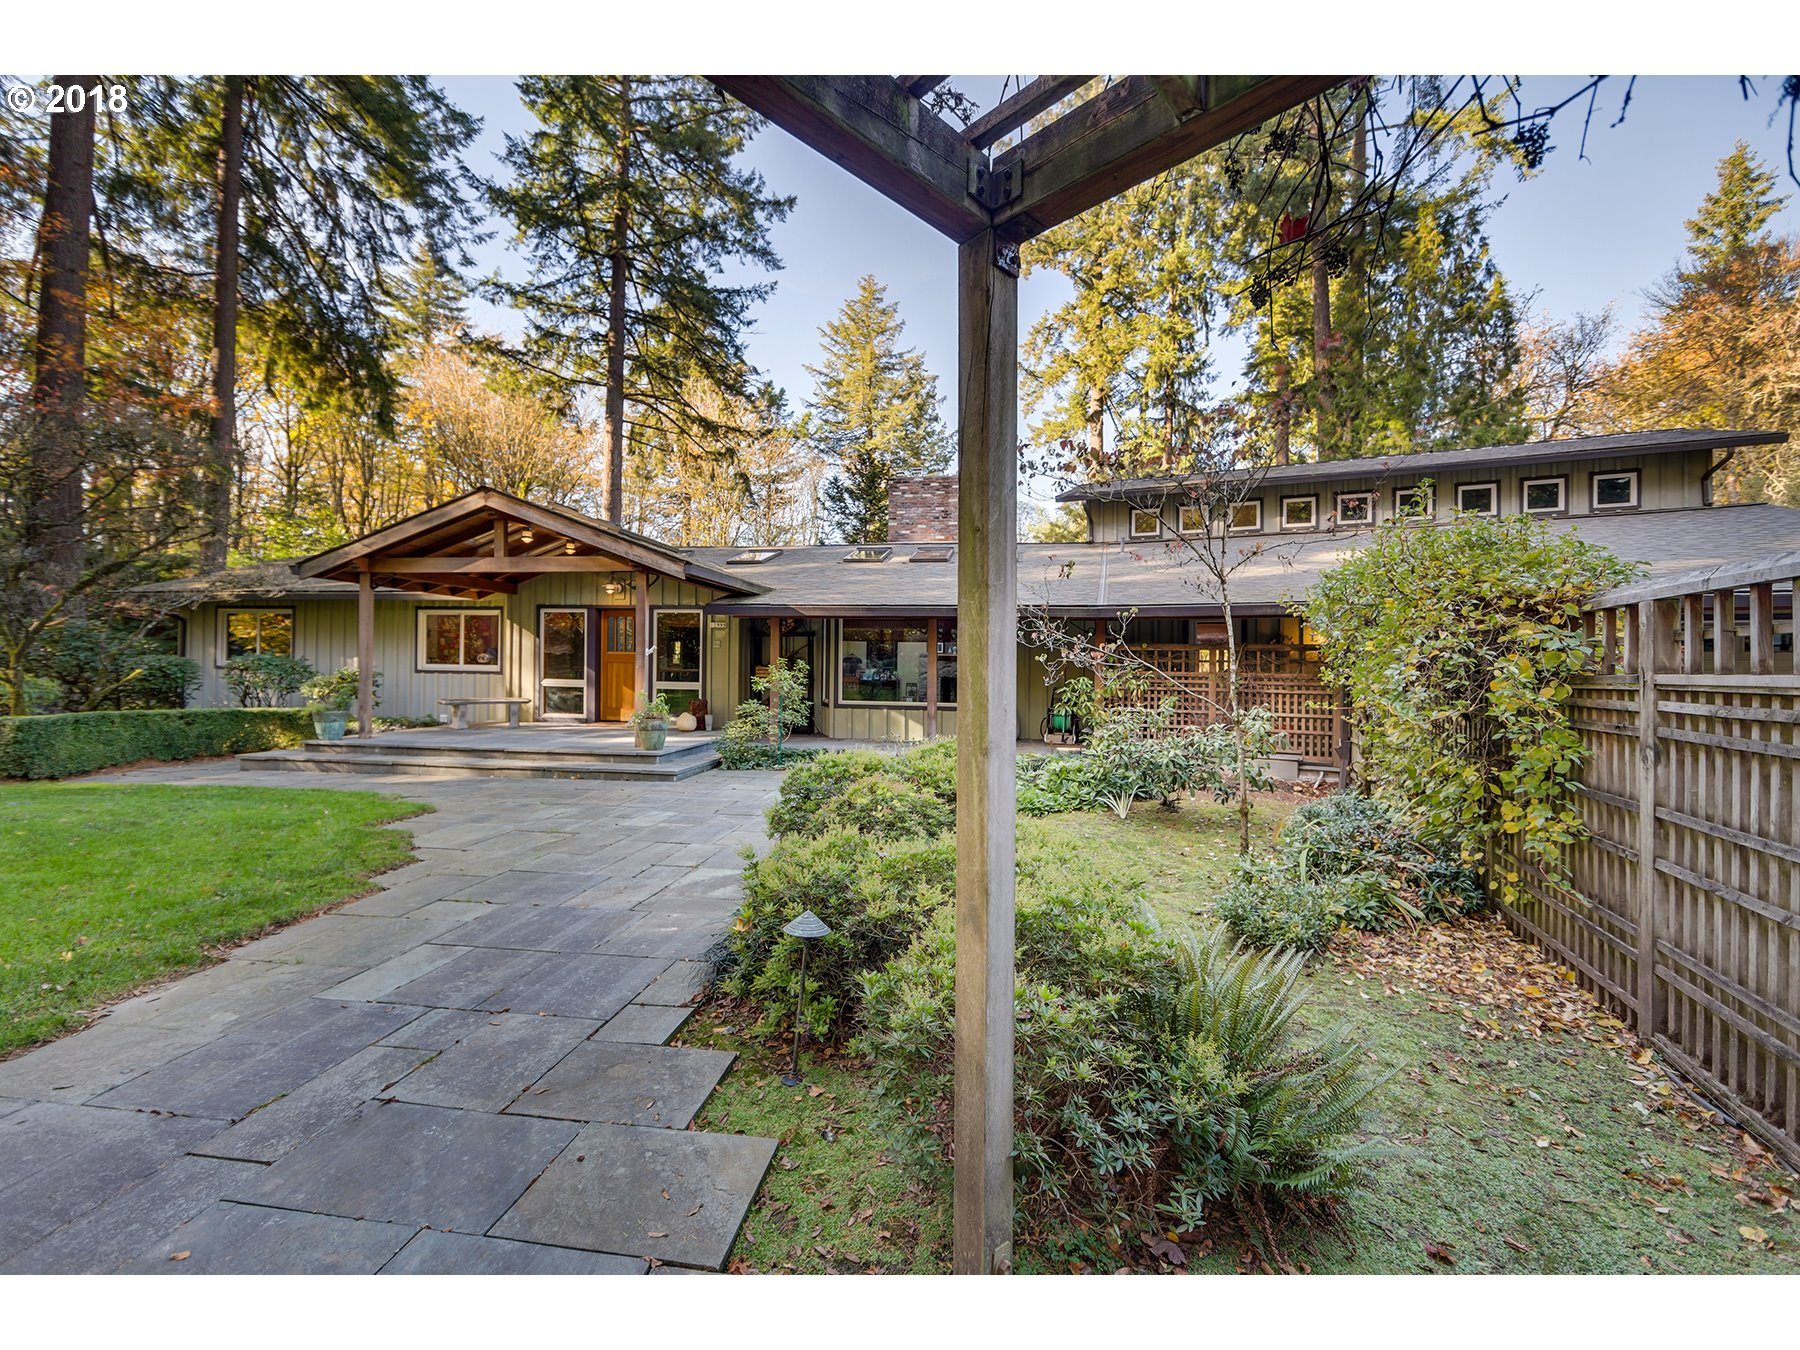 4445 sq. ft 5 bedrooms 3 bathrooms  House For Sale, Portland, OR